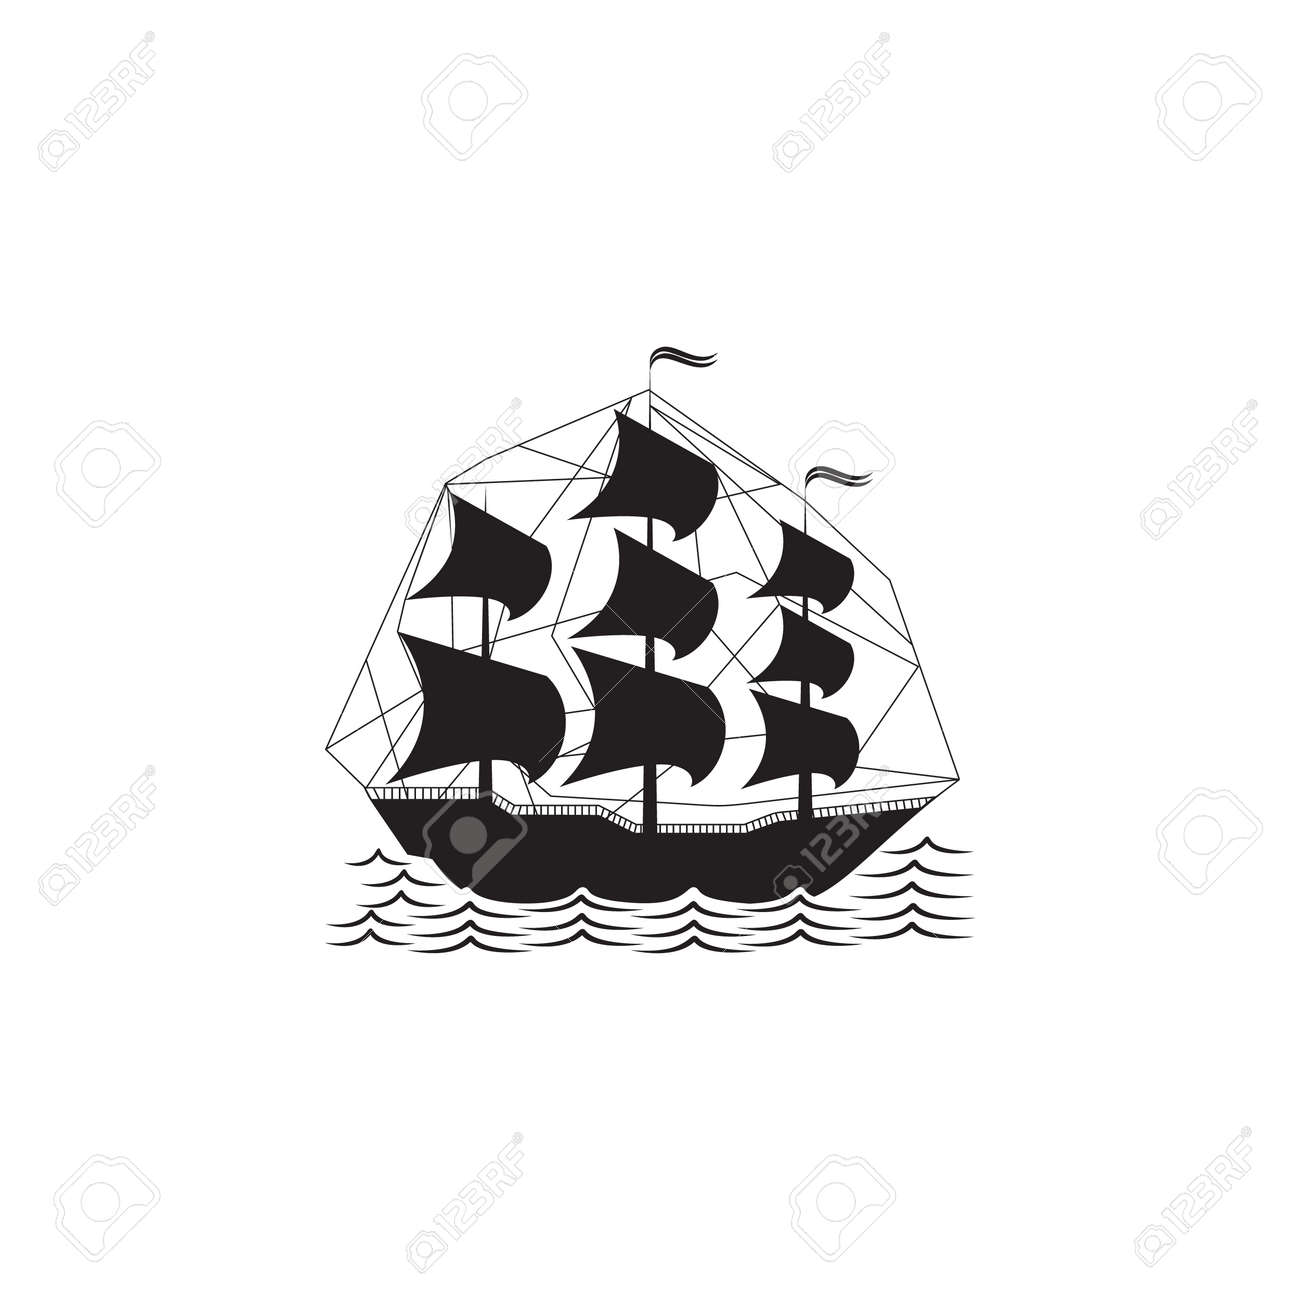 Military sailing ship icon  Element of ship illustration  Premium